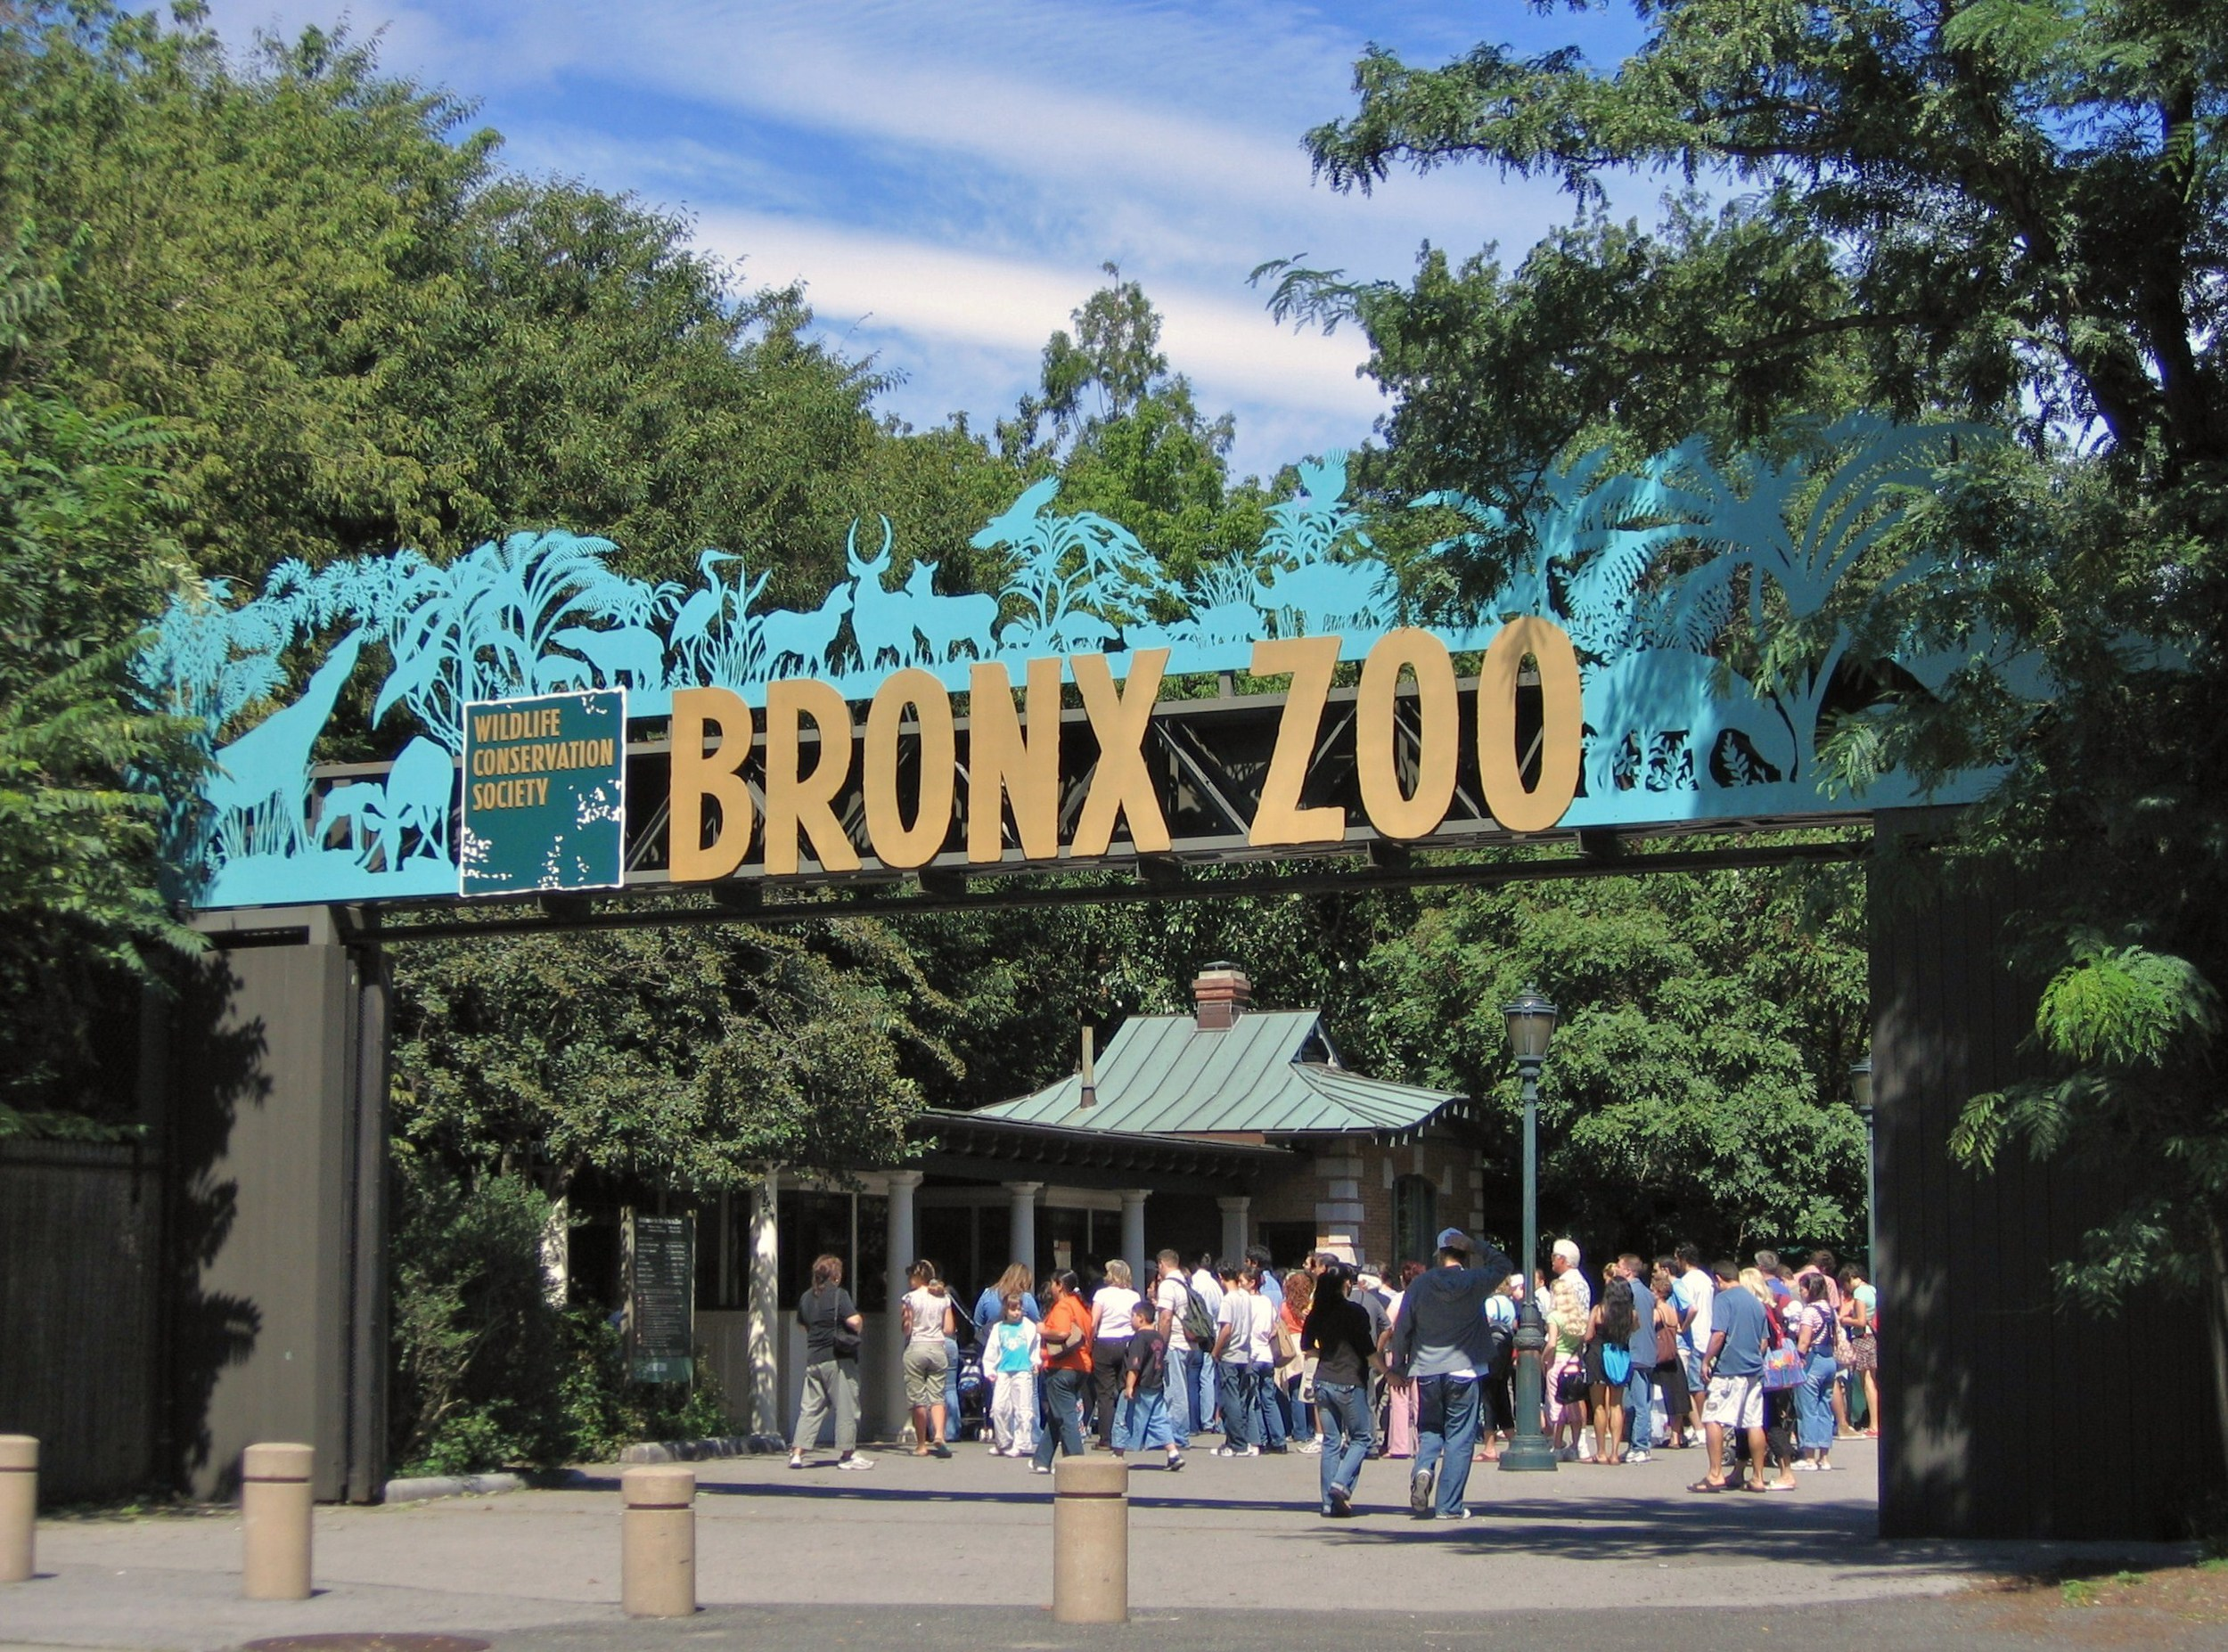 Bronx Zoo is free everyWednesday  Grab a sketchpad and draw from real life or download this activity guide for your visit.